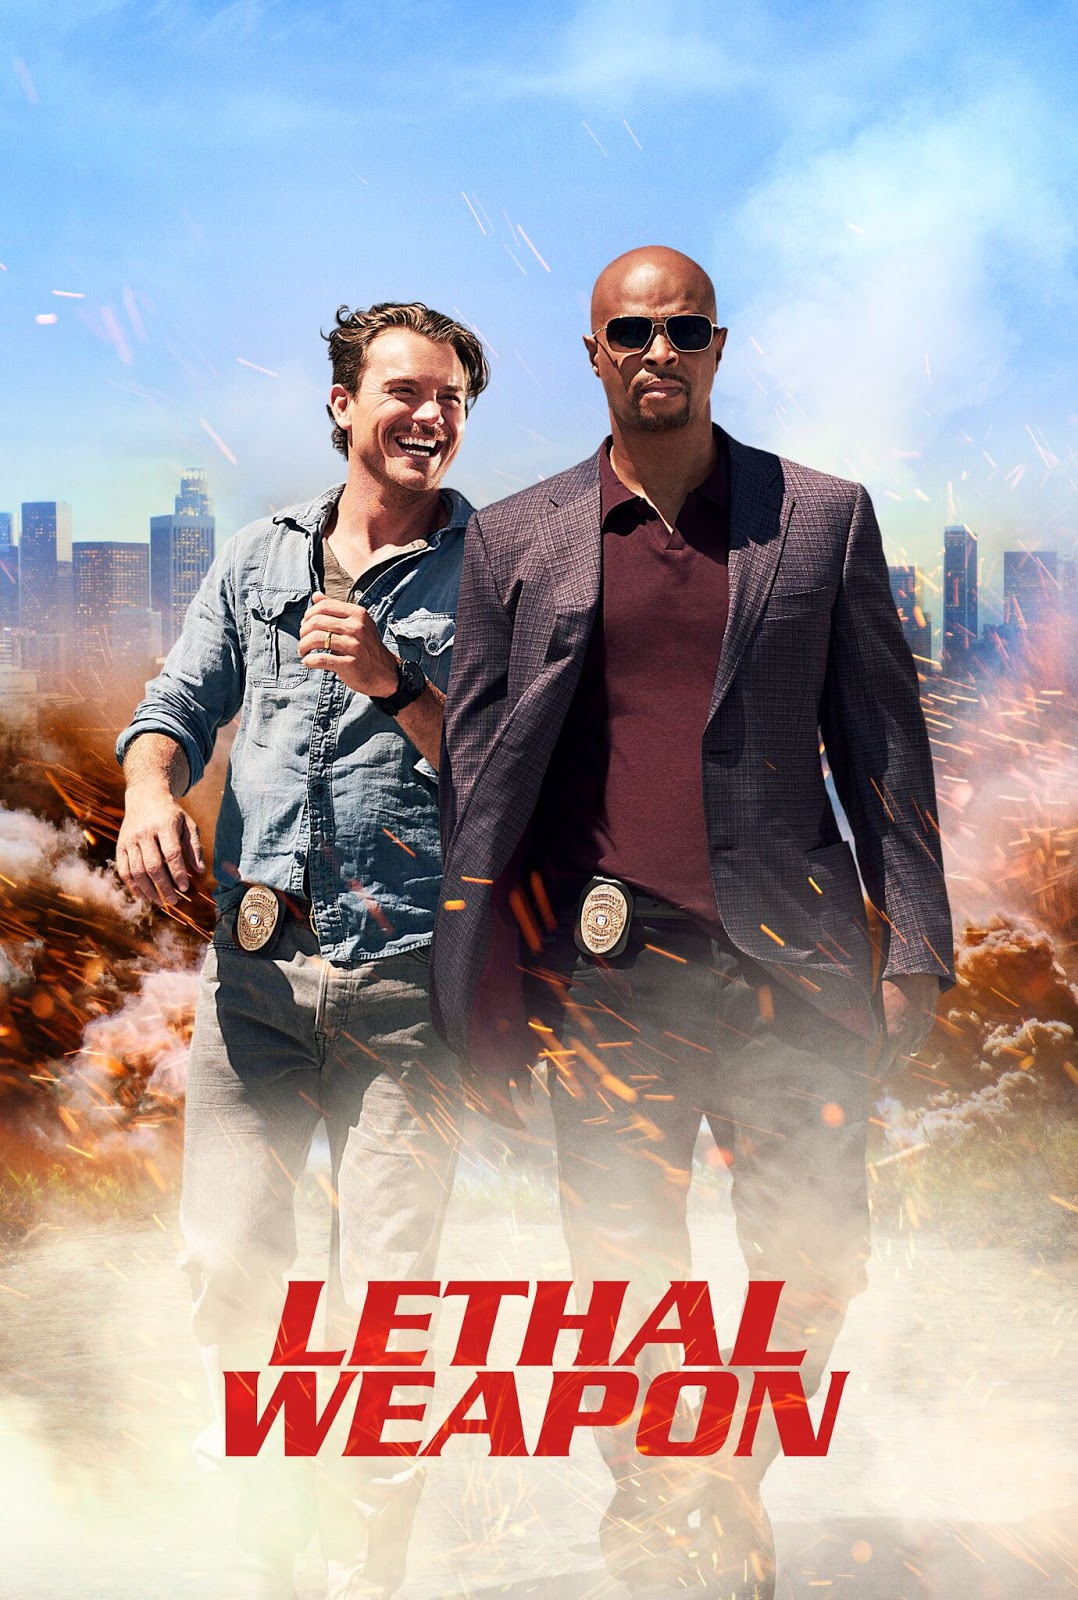 Lethal Weapon [S01][1x01-1x05] WEB-DL 720p LAT-EN